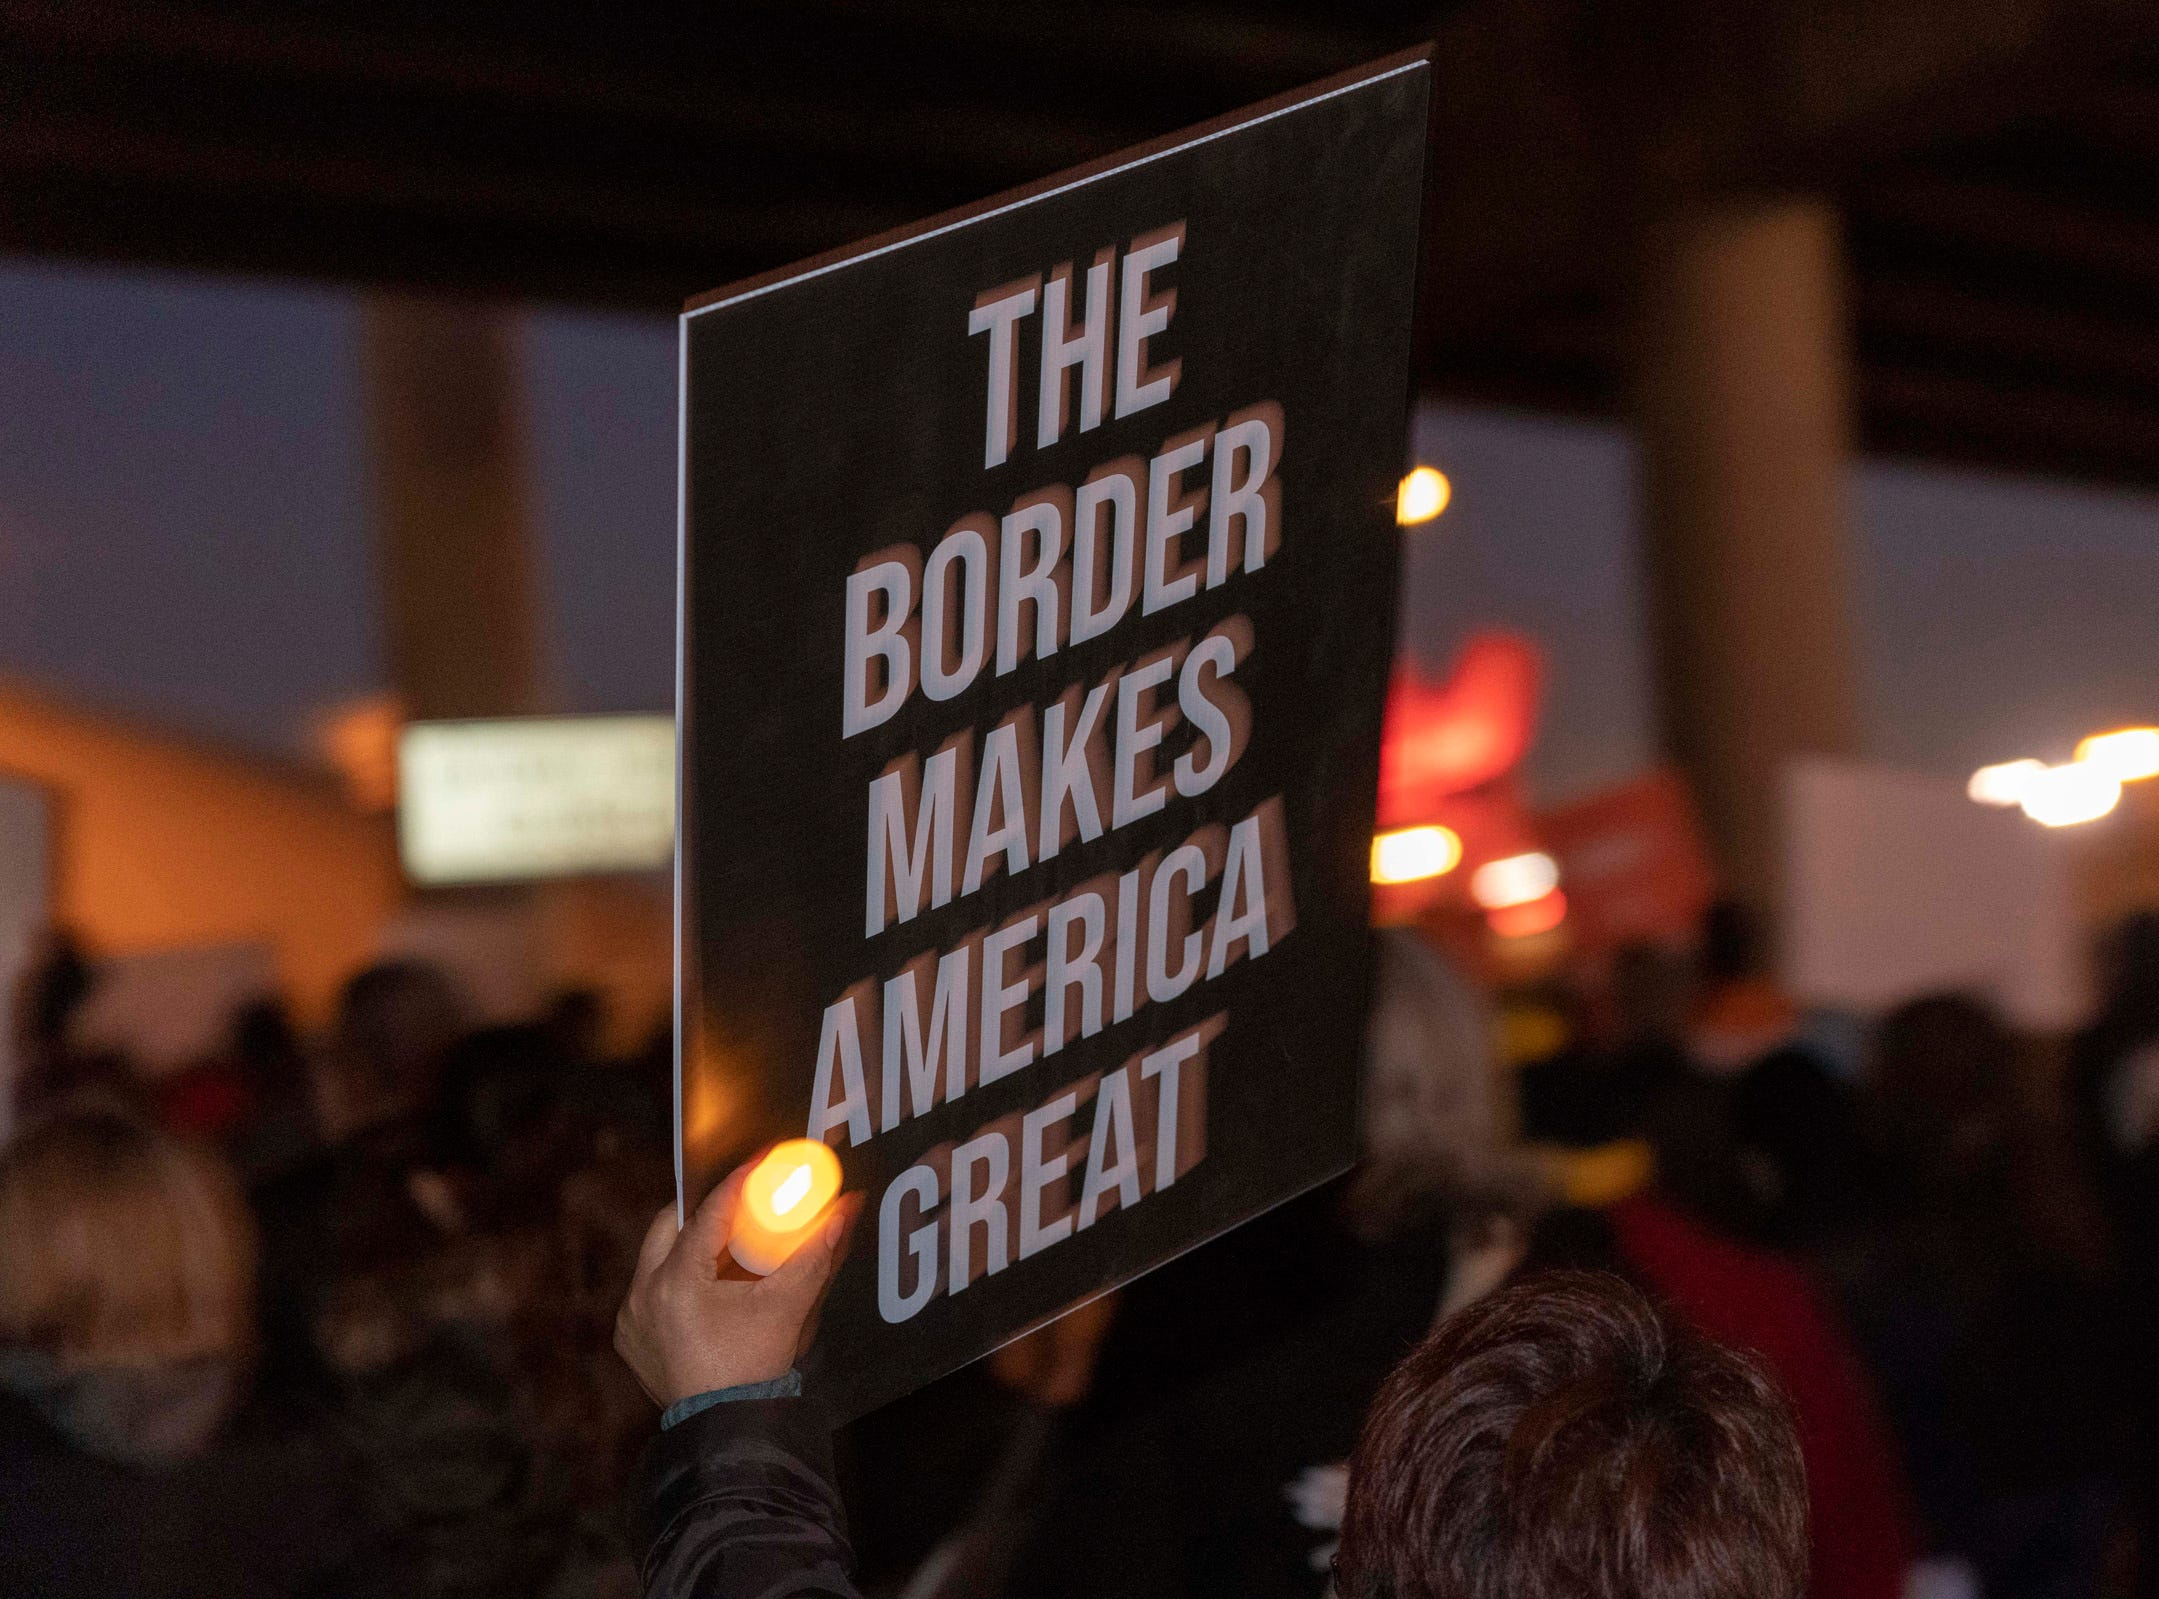 2/11/19 6:21:41 PM -- El Paso, TX, U.S.A  -- Hundreds joined the March for Truth along with Border Network for Human Rights, Women's March, to protest against President Trump campaign rally near El Paso County Coliseum on Feb. 11, 2019.